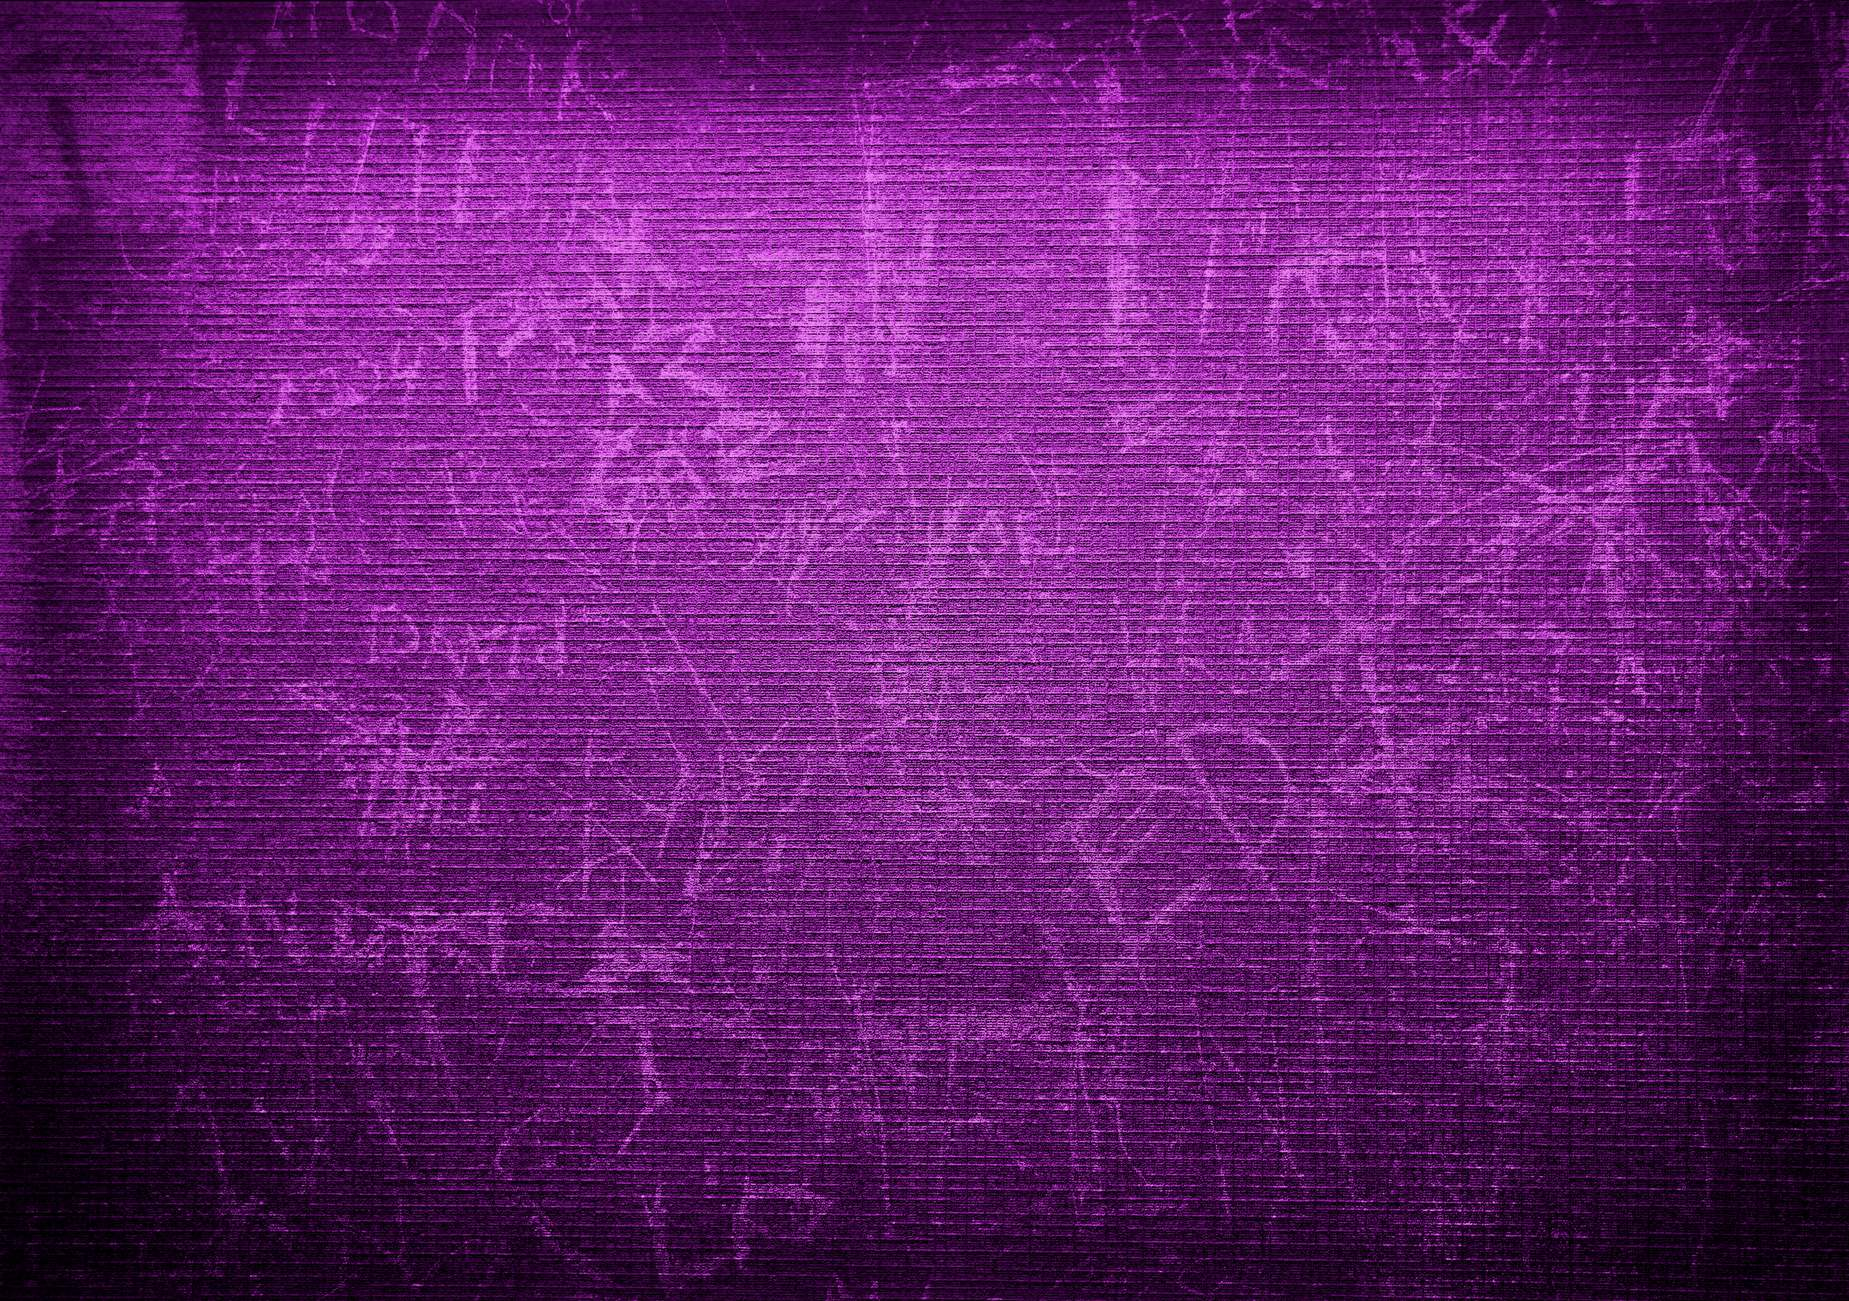 Scratched Purple Wall Background Texture